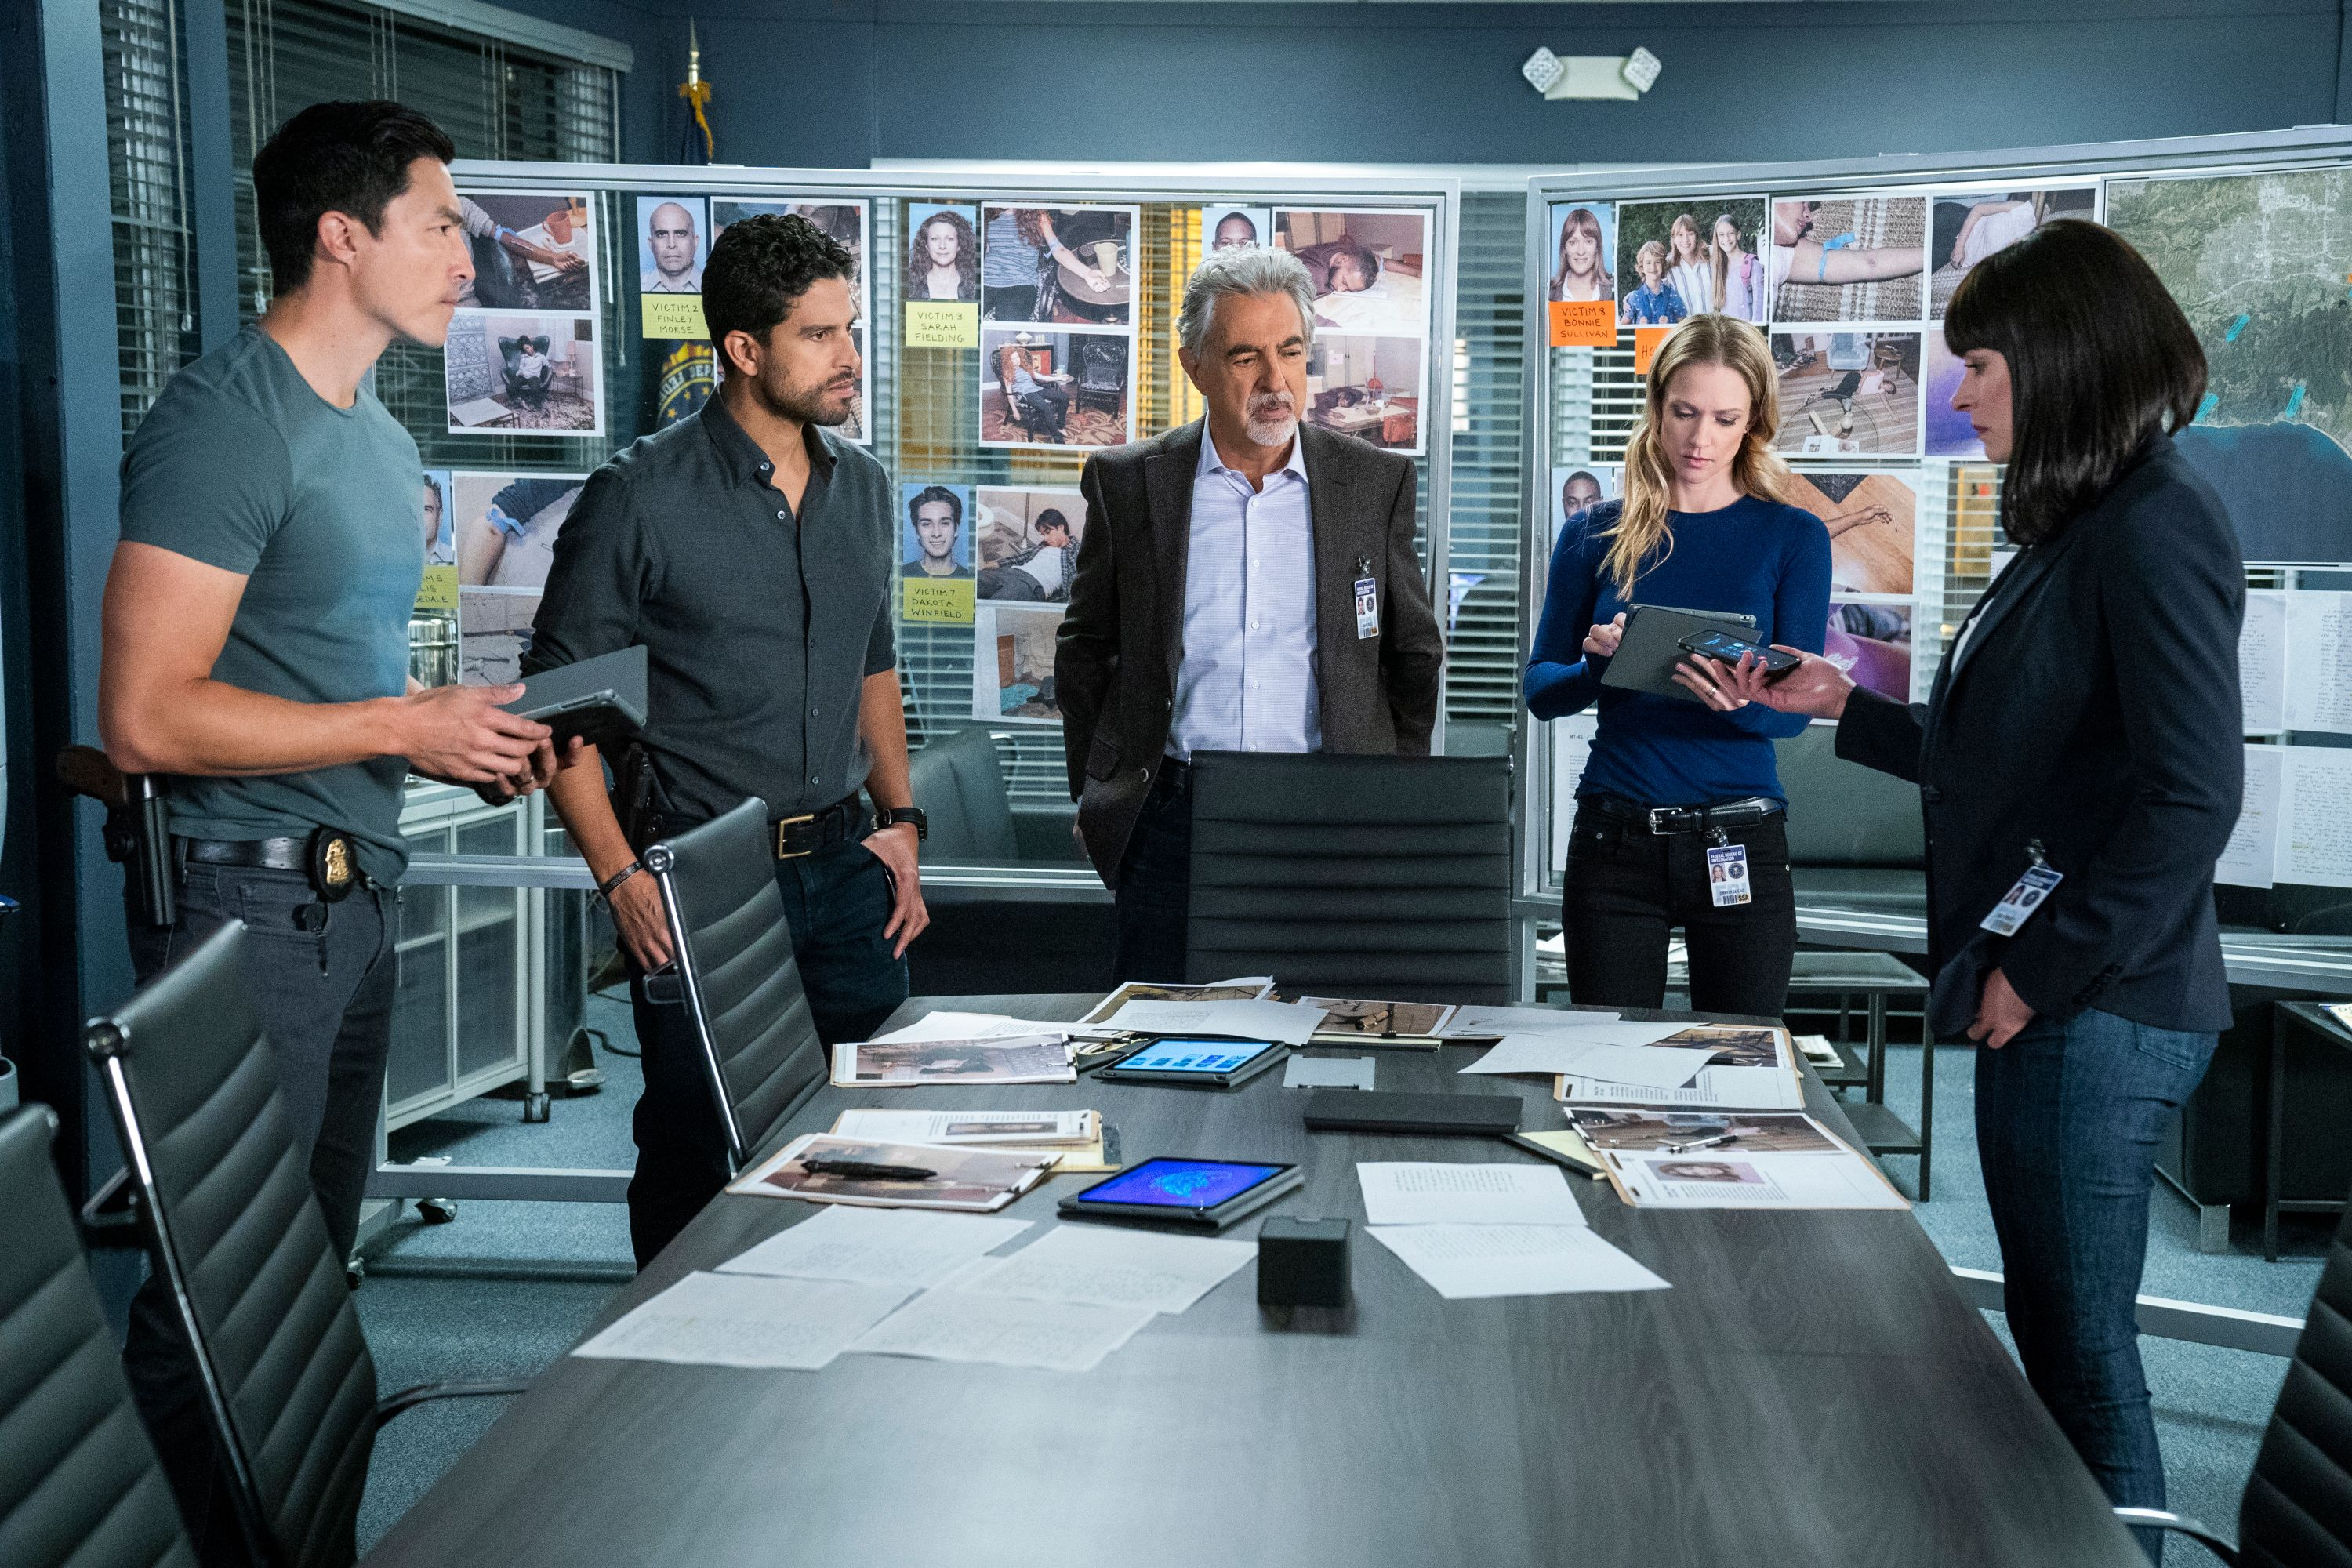 'Criminal Minds' will air the last episode of the series tonight, Feb. 19.